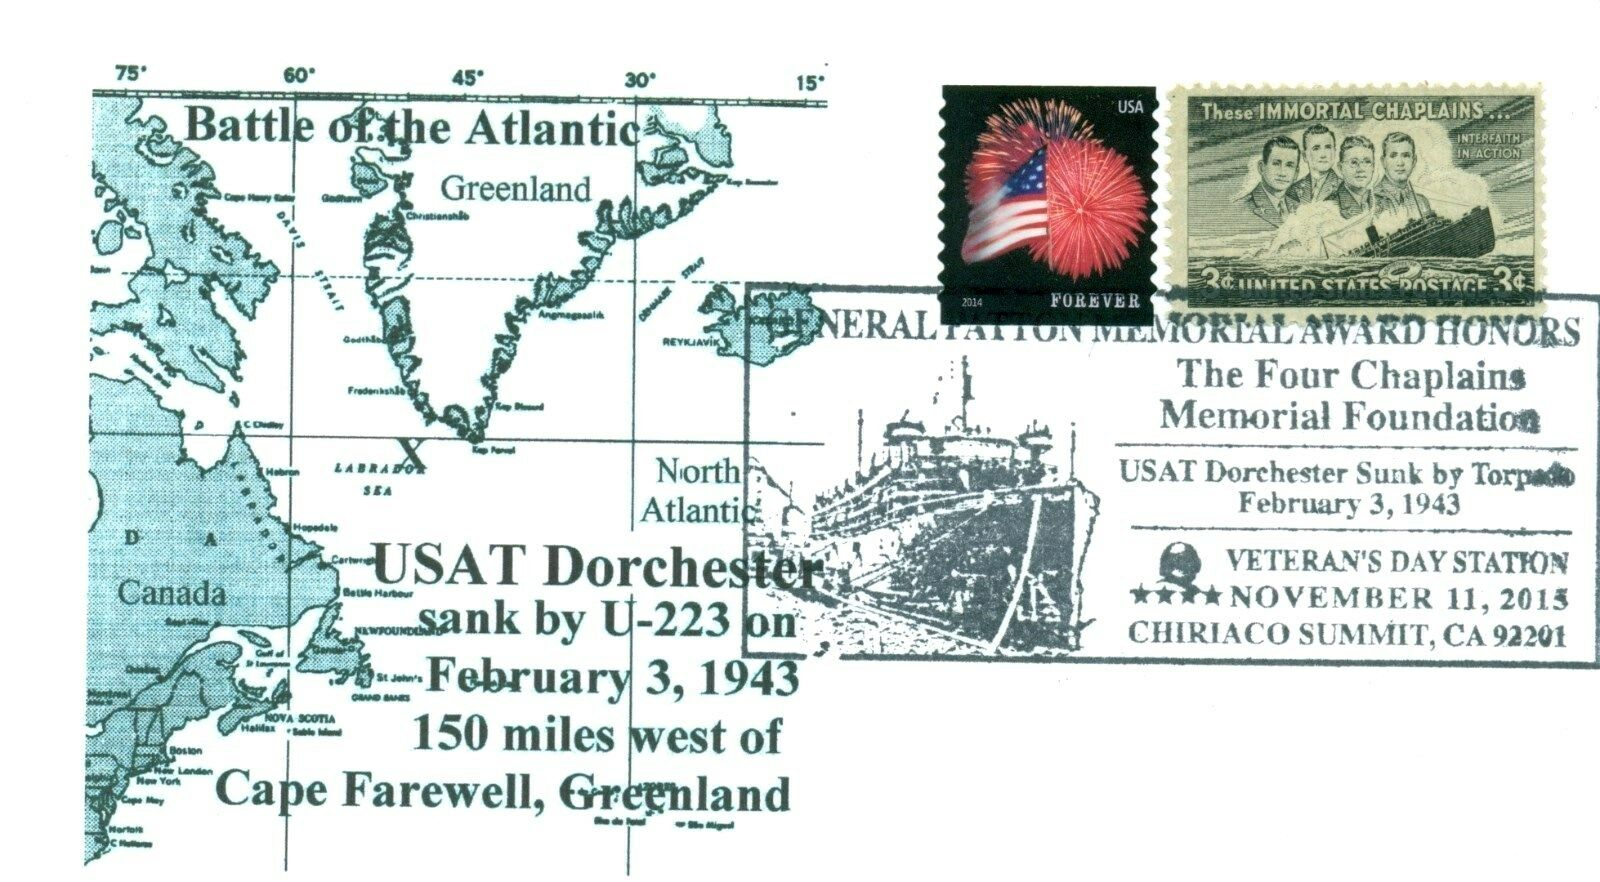 United States - Scott #956 (1948) used on 2015 Veterans Day cover marking the sinking of the Dorchester.